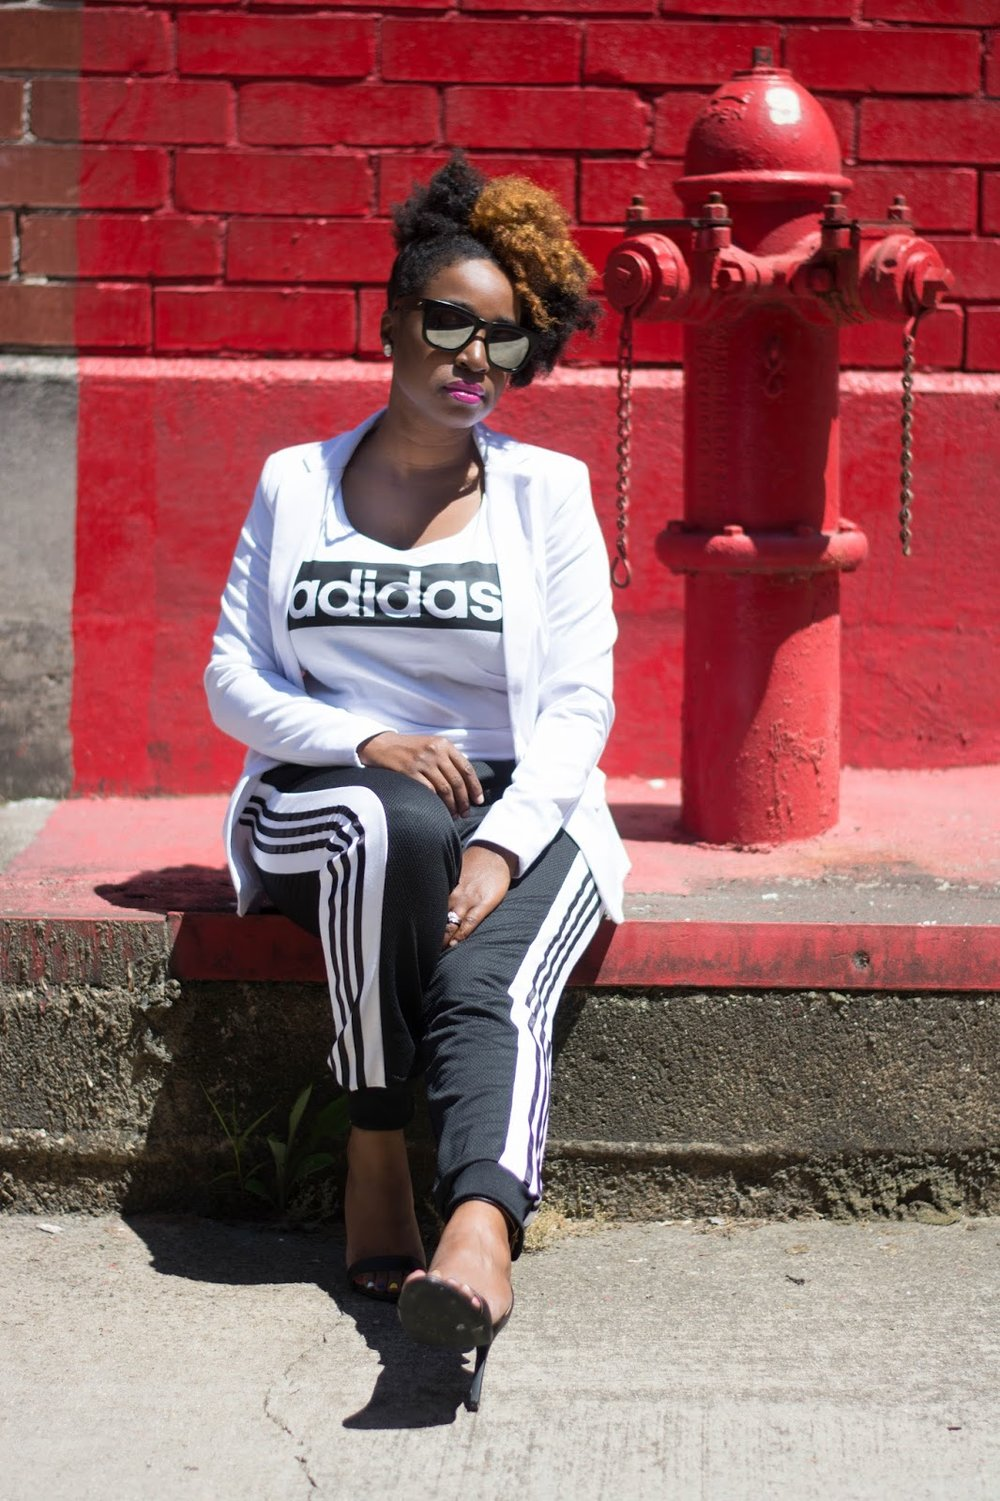 Atlanta style blogger, Atlanta street style, Street Style, Atlanta blogger, Black blogger, Black girls rock, Natural hair fashion, White blazer, Forever21, Adidas joggers, Athleisure street style, Charlotte Russe, Style blogger, Black and White, Atlanta influencer, Style influencer, Instyle, People style watch, Black girls killing it, Black fashion blogger, Atlanta style, Personal style, Atlanta stylist